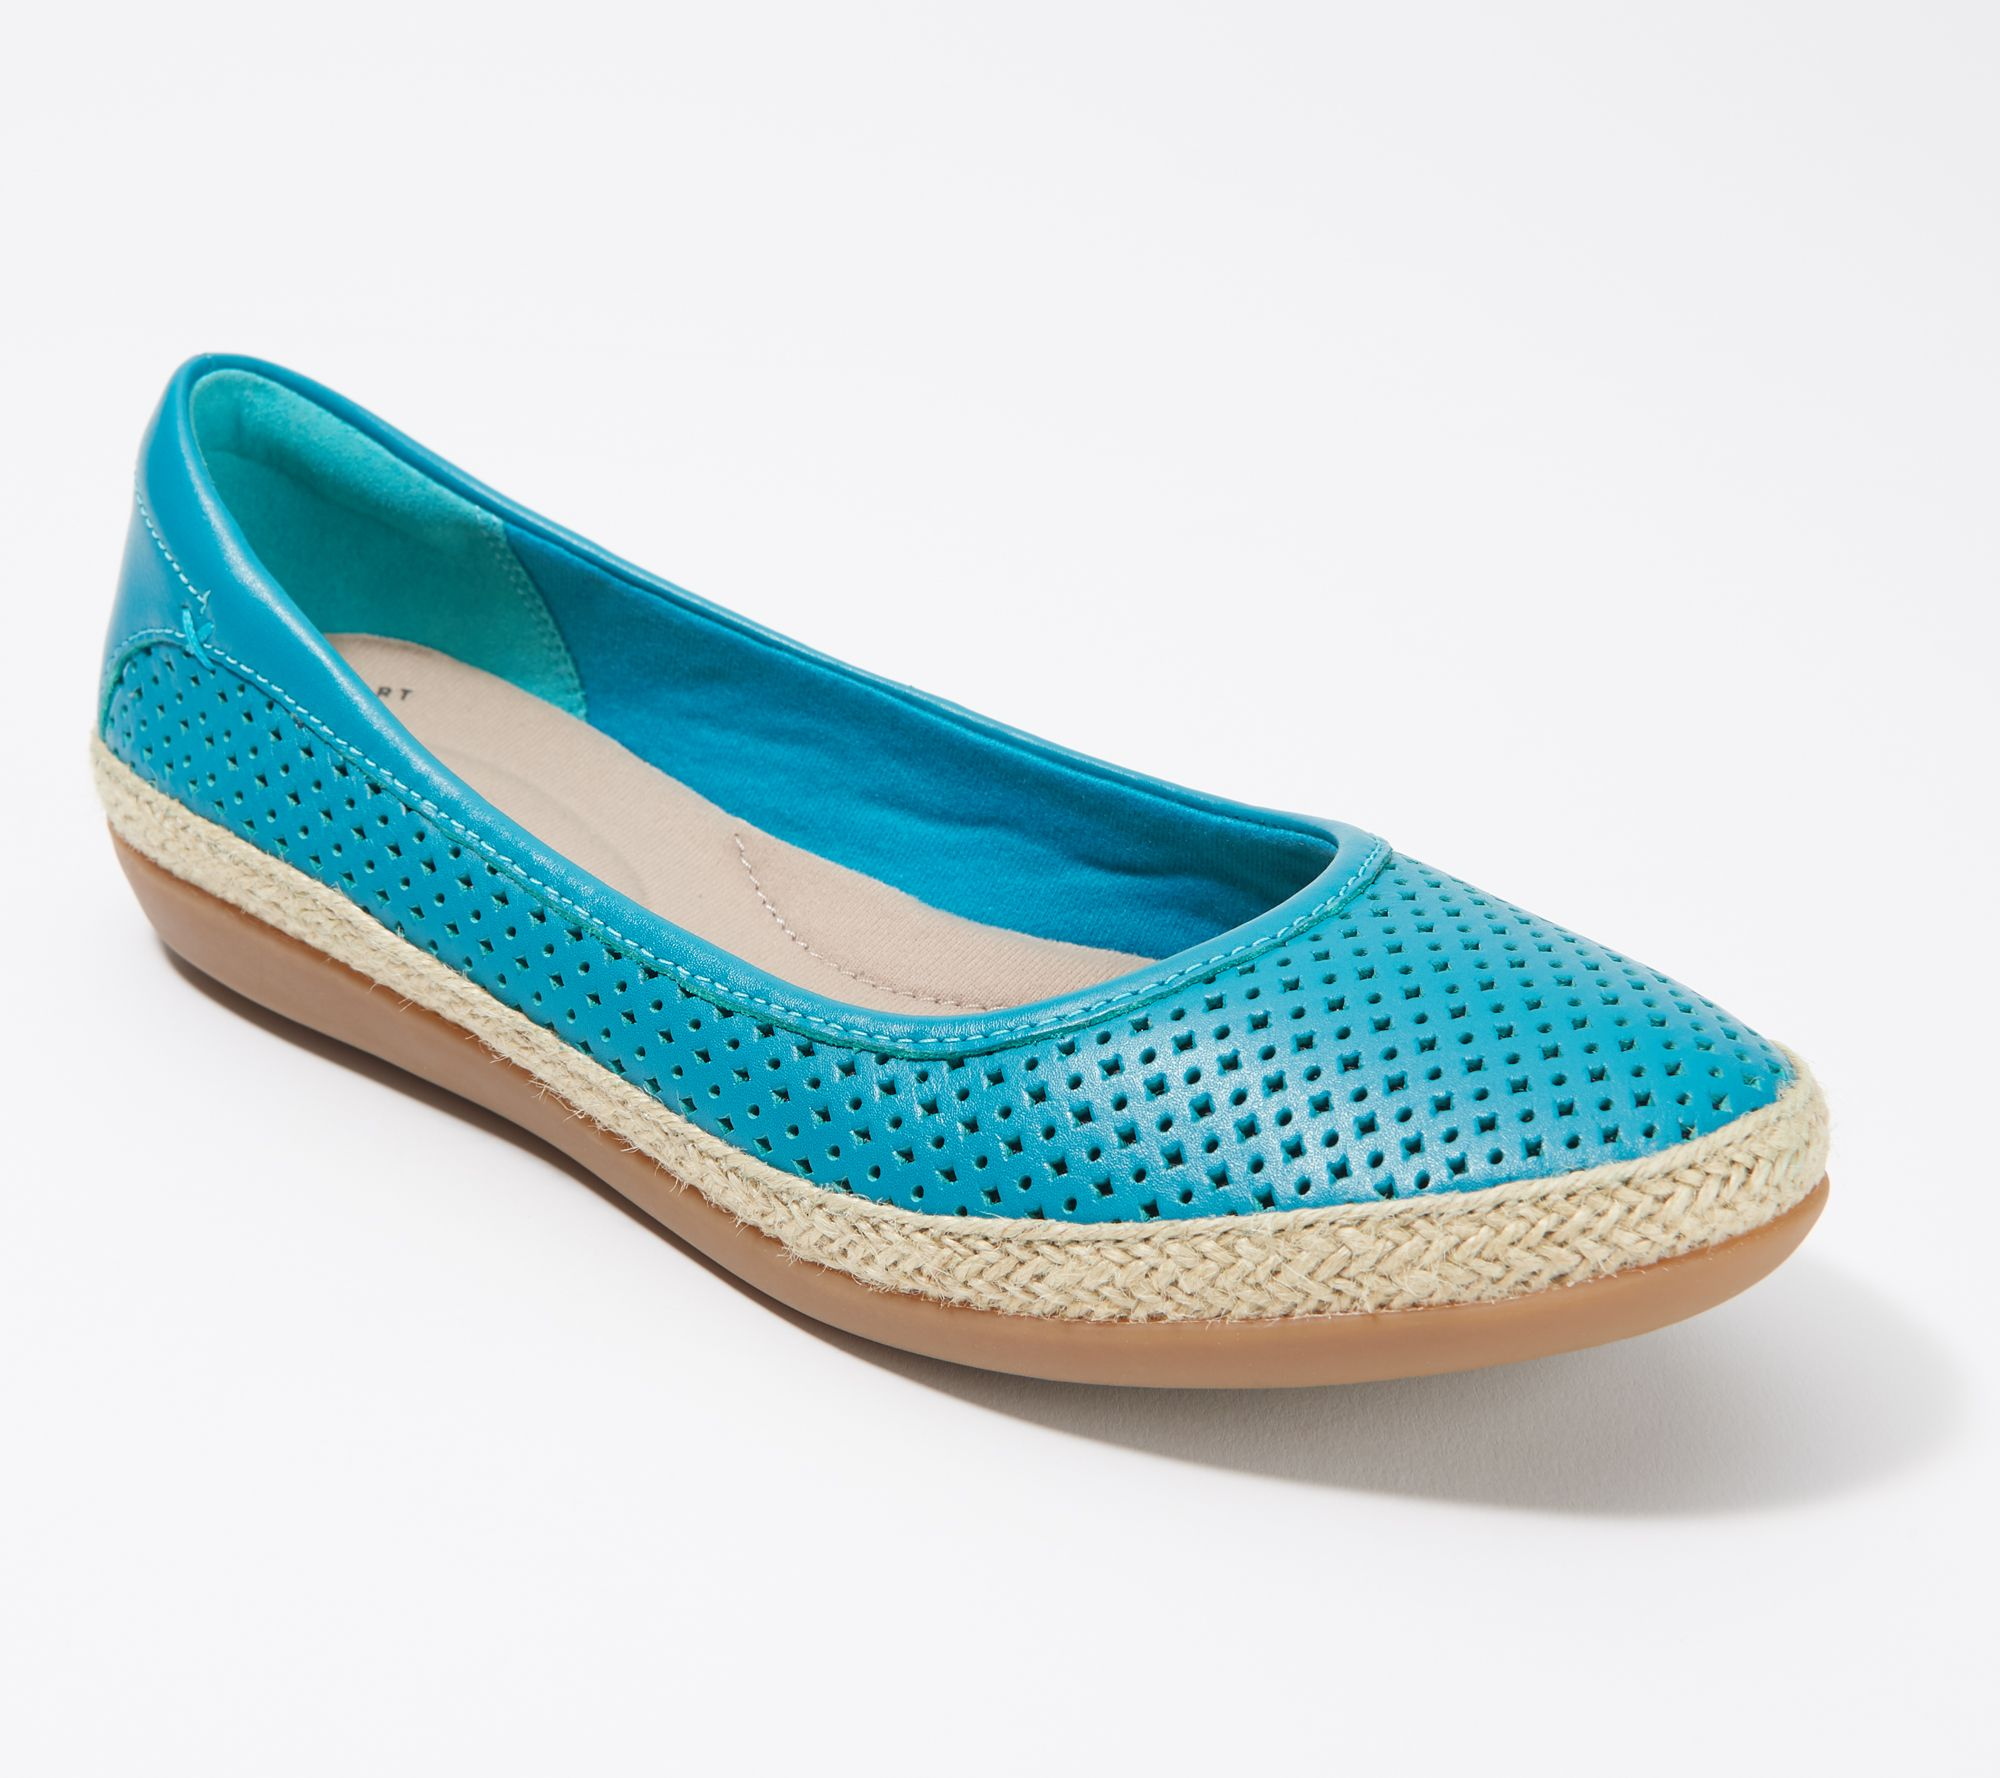 Clarks Perforated Leather Espadrilles - Danelly Adira big sale cheap price cheap online reliable online Tb4U6